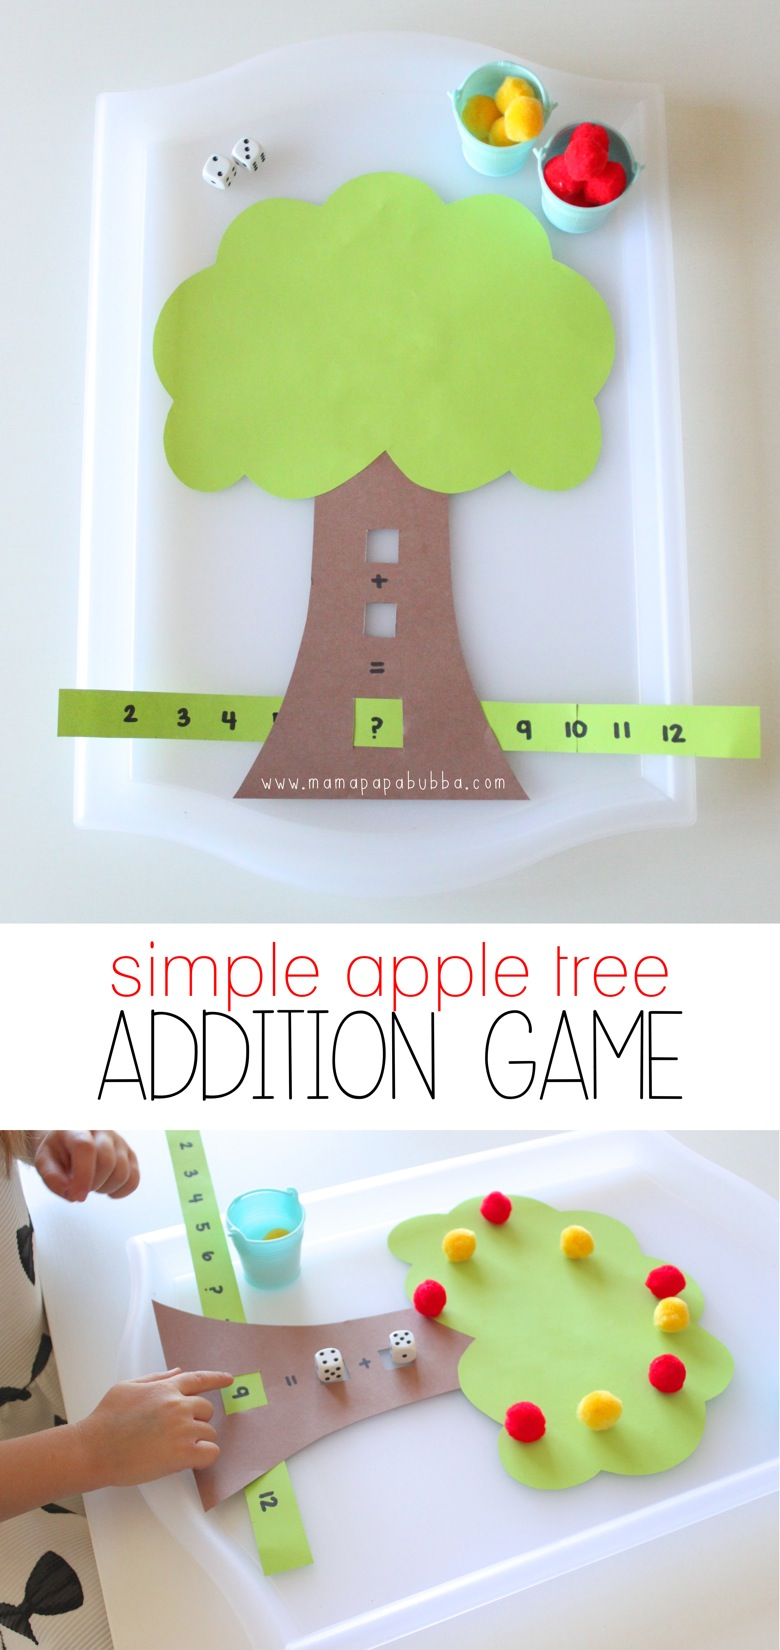 Simple Apple Tree Addition Game | Mama Papa Bubba